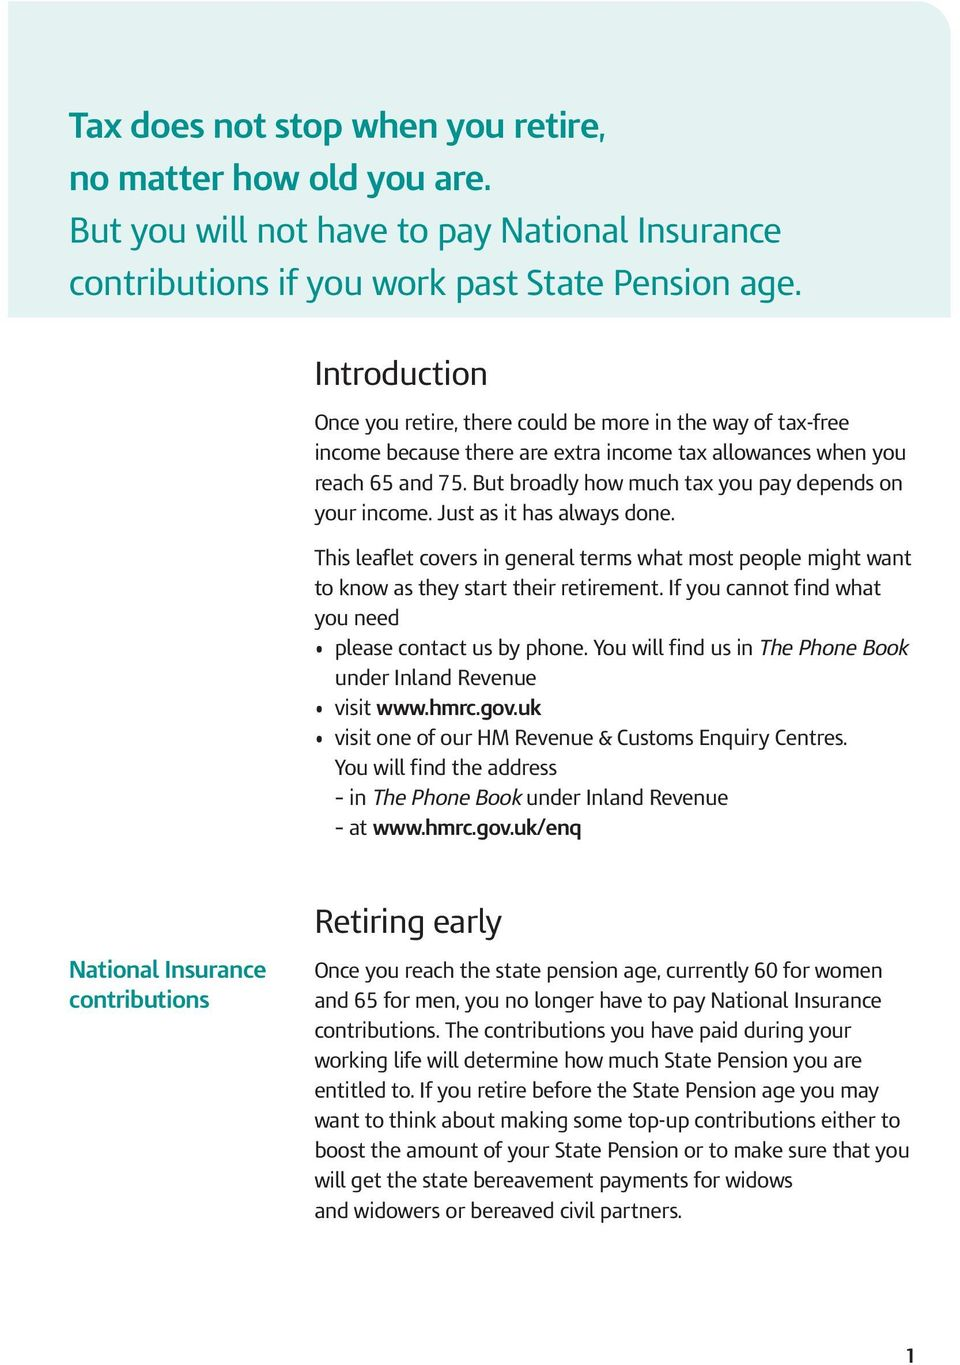 But broadly how much tax you pay depends on your income. Just as it has always done. This leaflet covers in general terms what most people might want to know as they start their retirement.